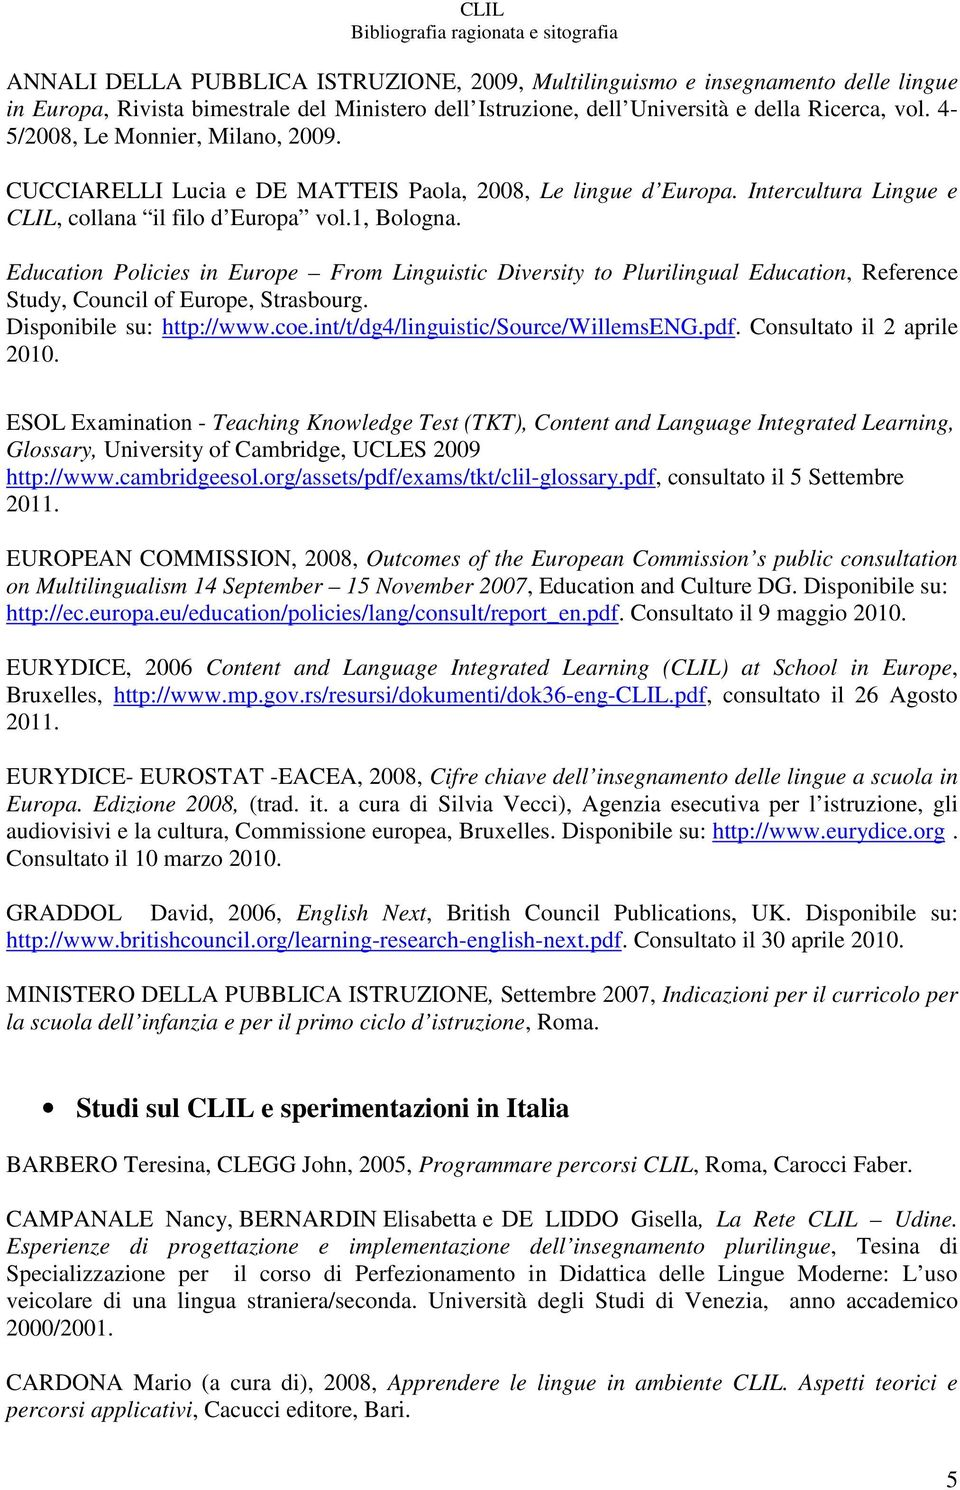 glossary for clil As mentioned, clil is a relatively new movement and unless you're doing clil in english (teaching a subject in english for a bunch of international students, for example), you're not gonna have much luck finding anything.